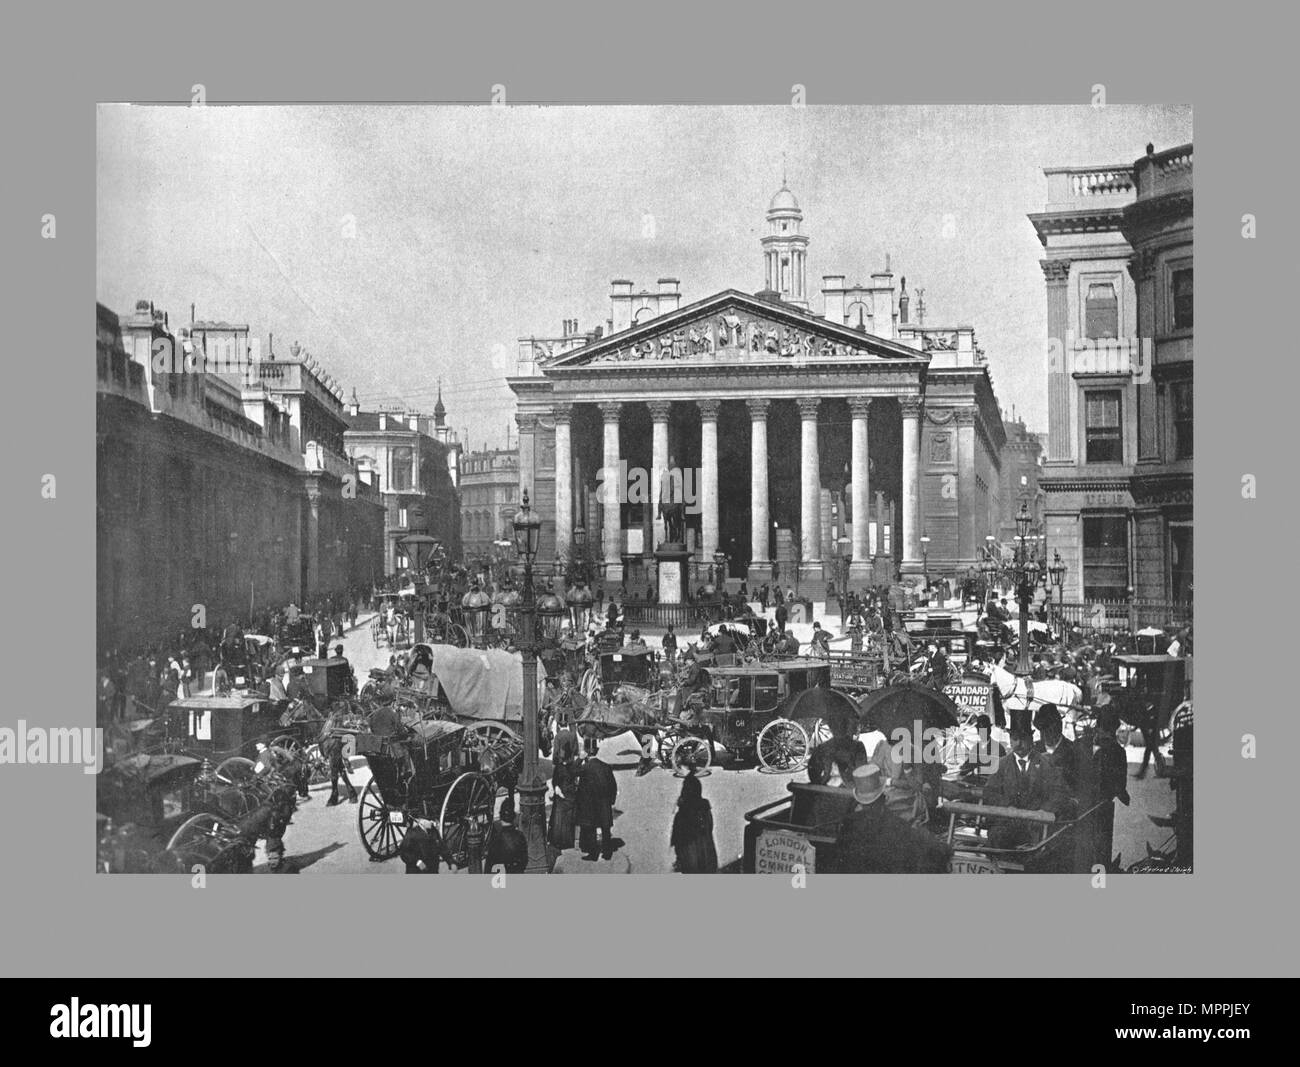 The Royal Exchange, London, c1900. Artist: Frith & Co. - Stock Image